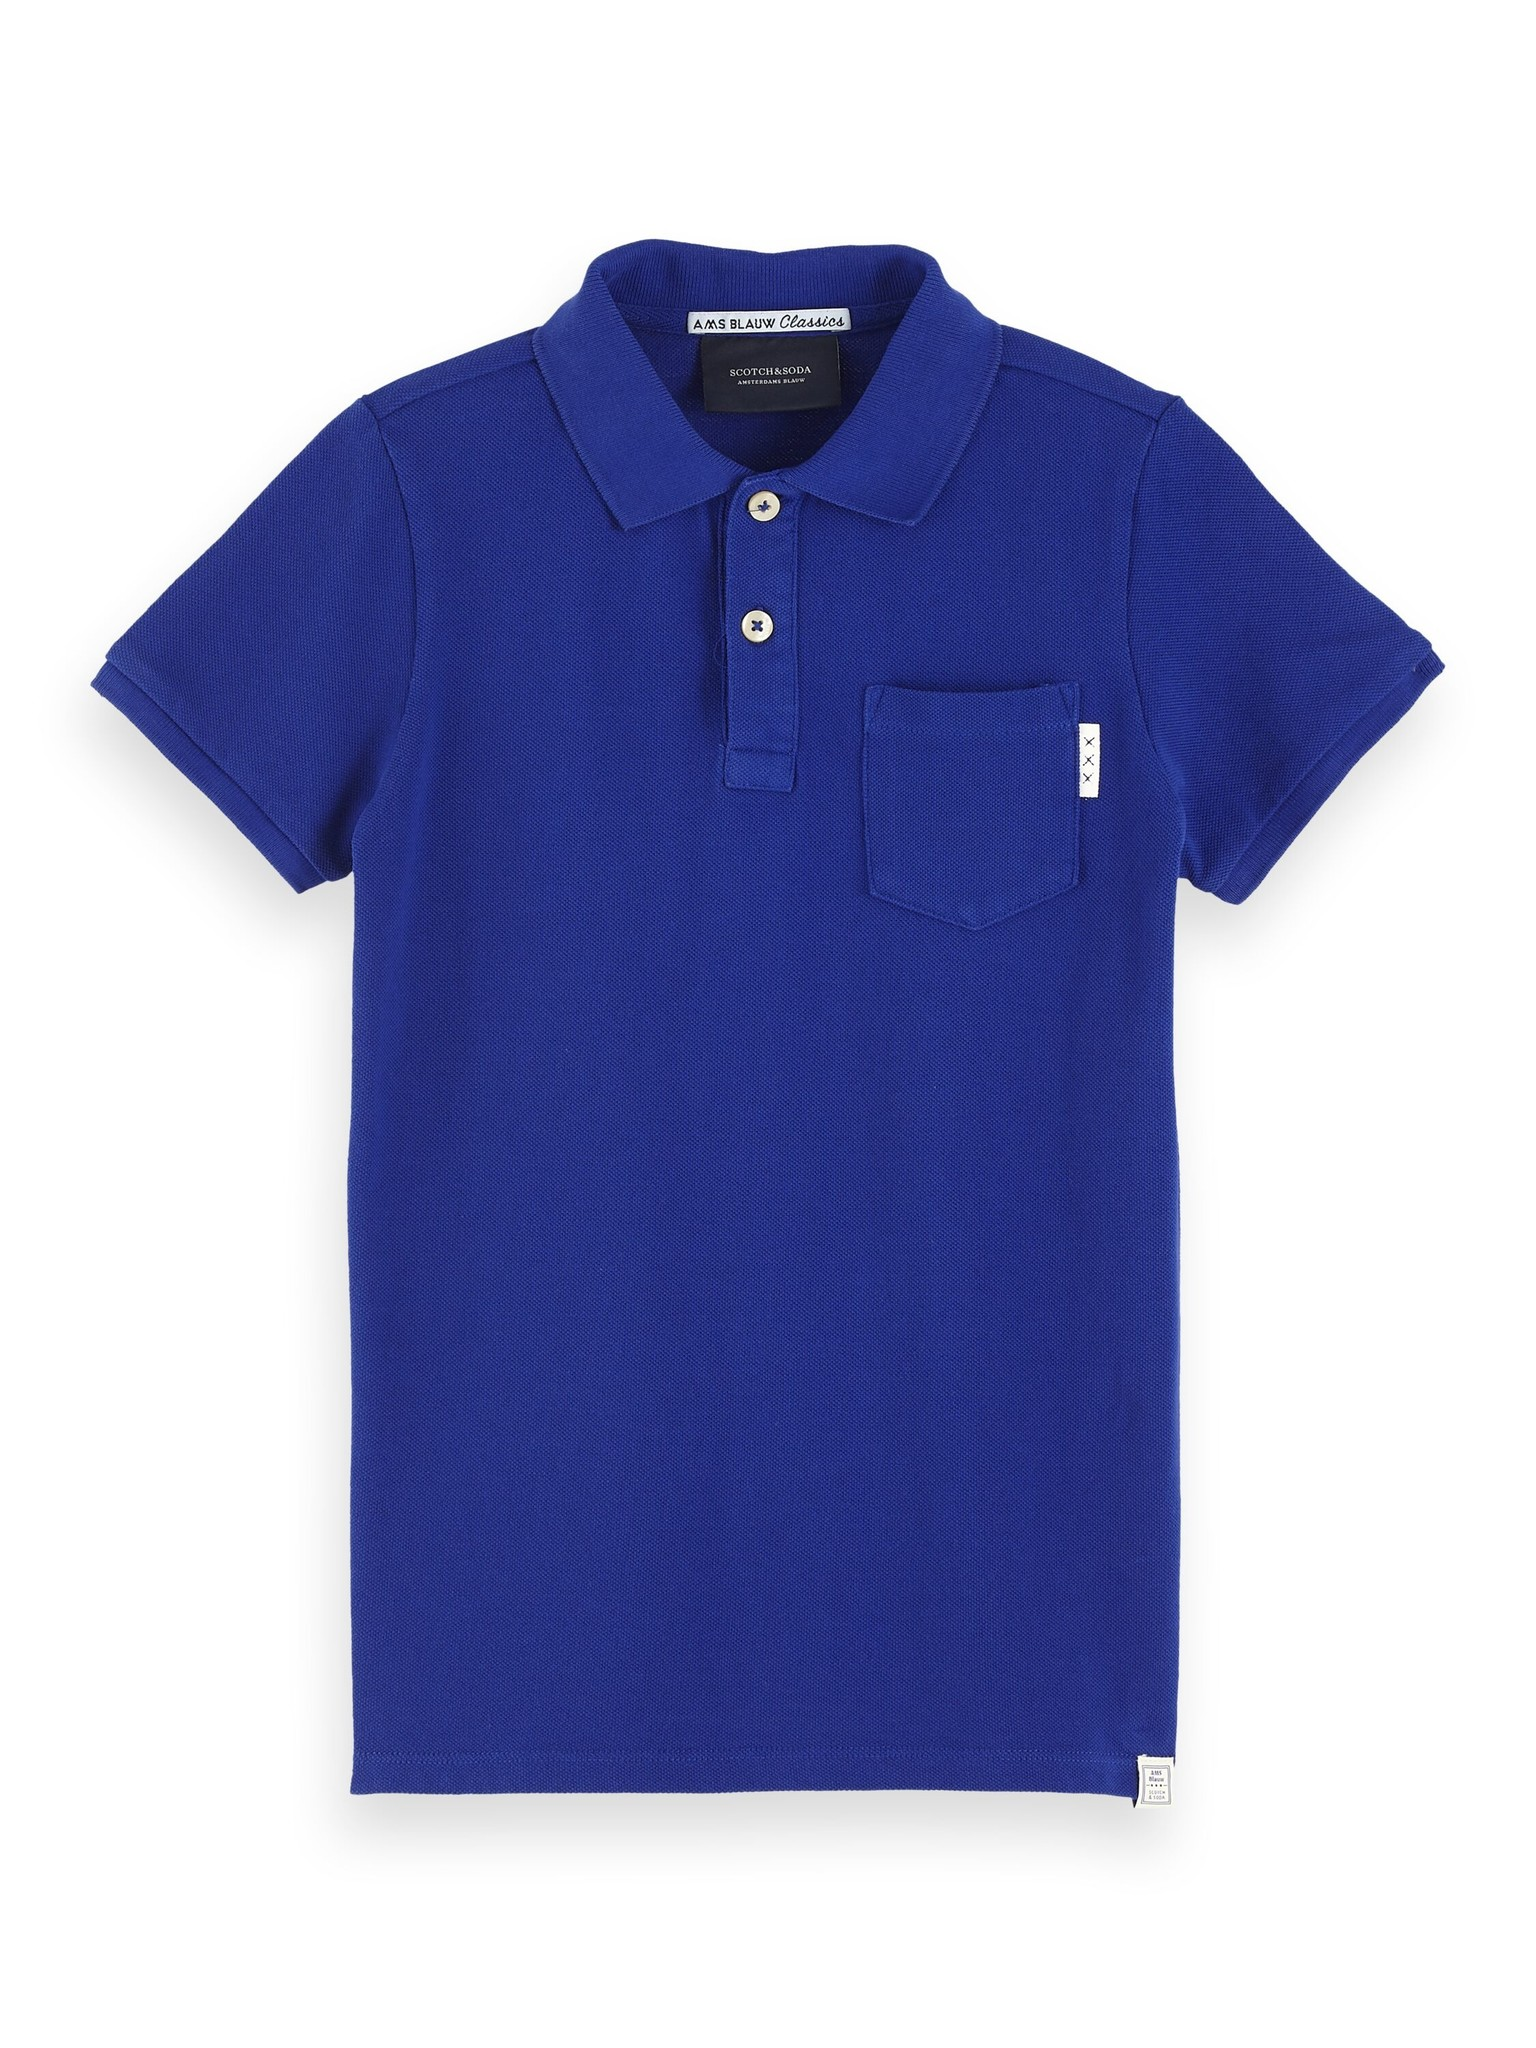 Scotch & Soda Ams blauw garment dyed polo 153959